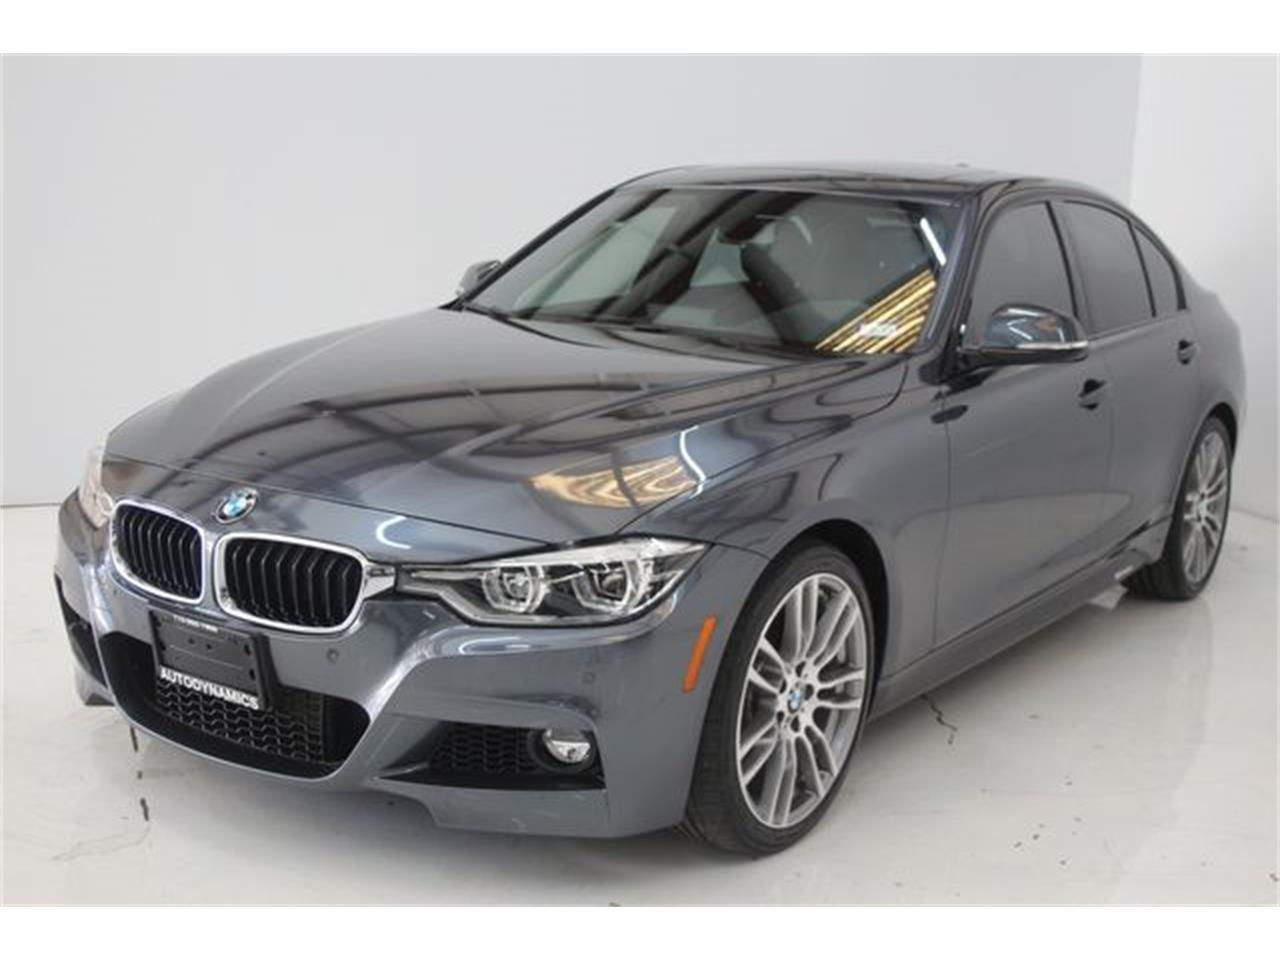 for sale 2016 bmw 3 series in houston, texas cars - houston, tx at geebo